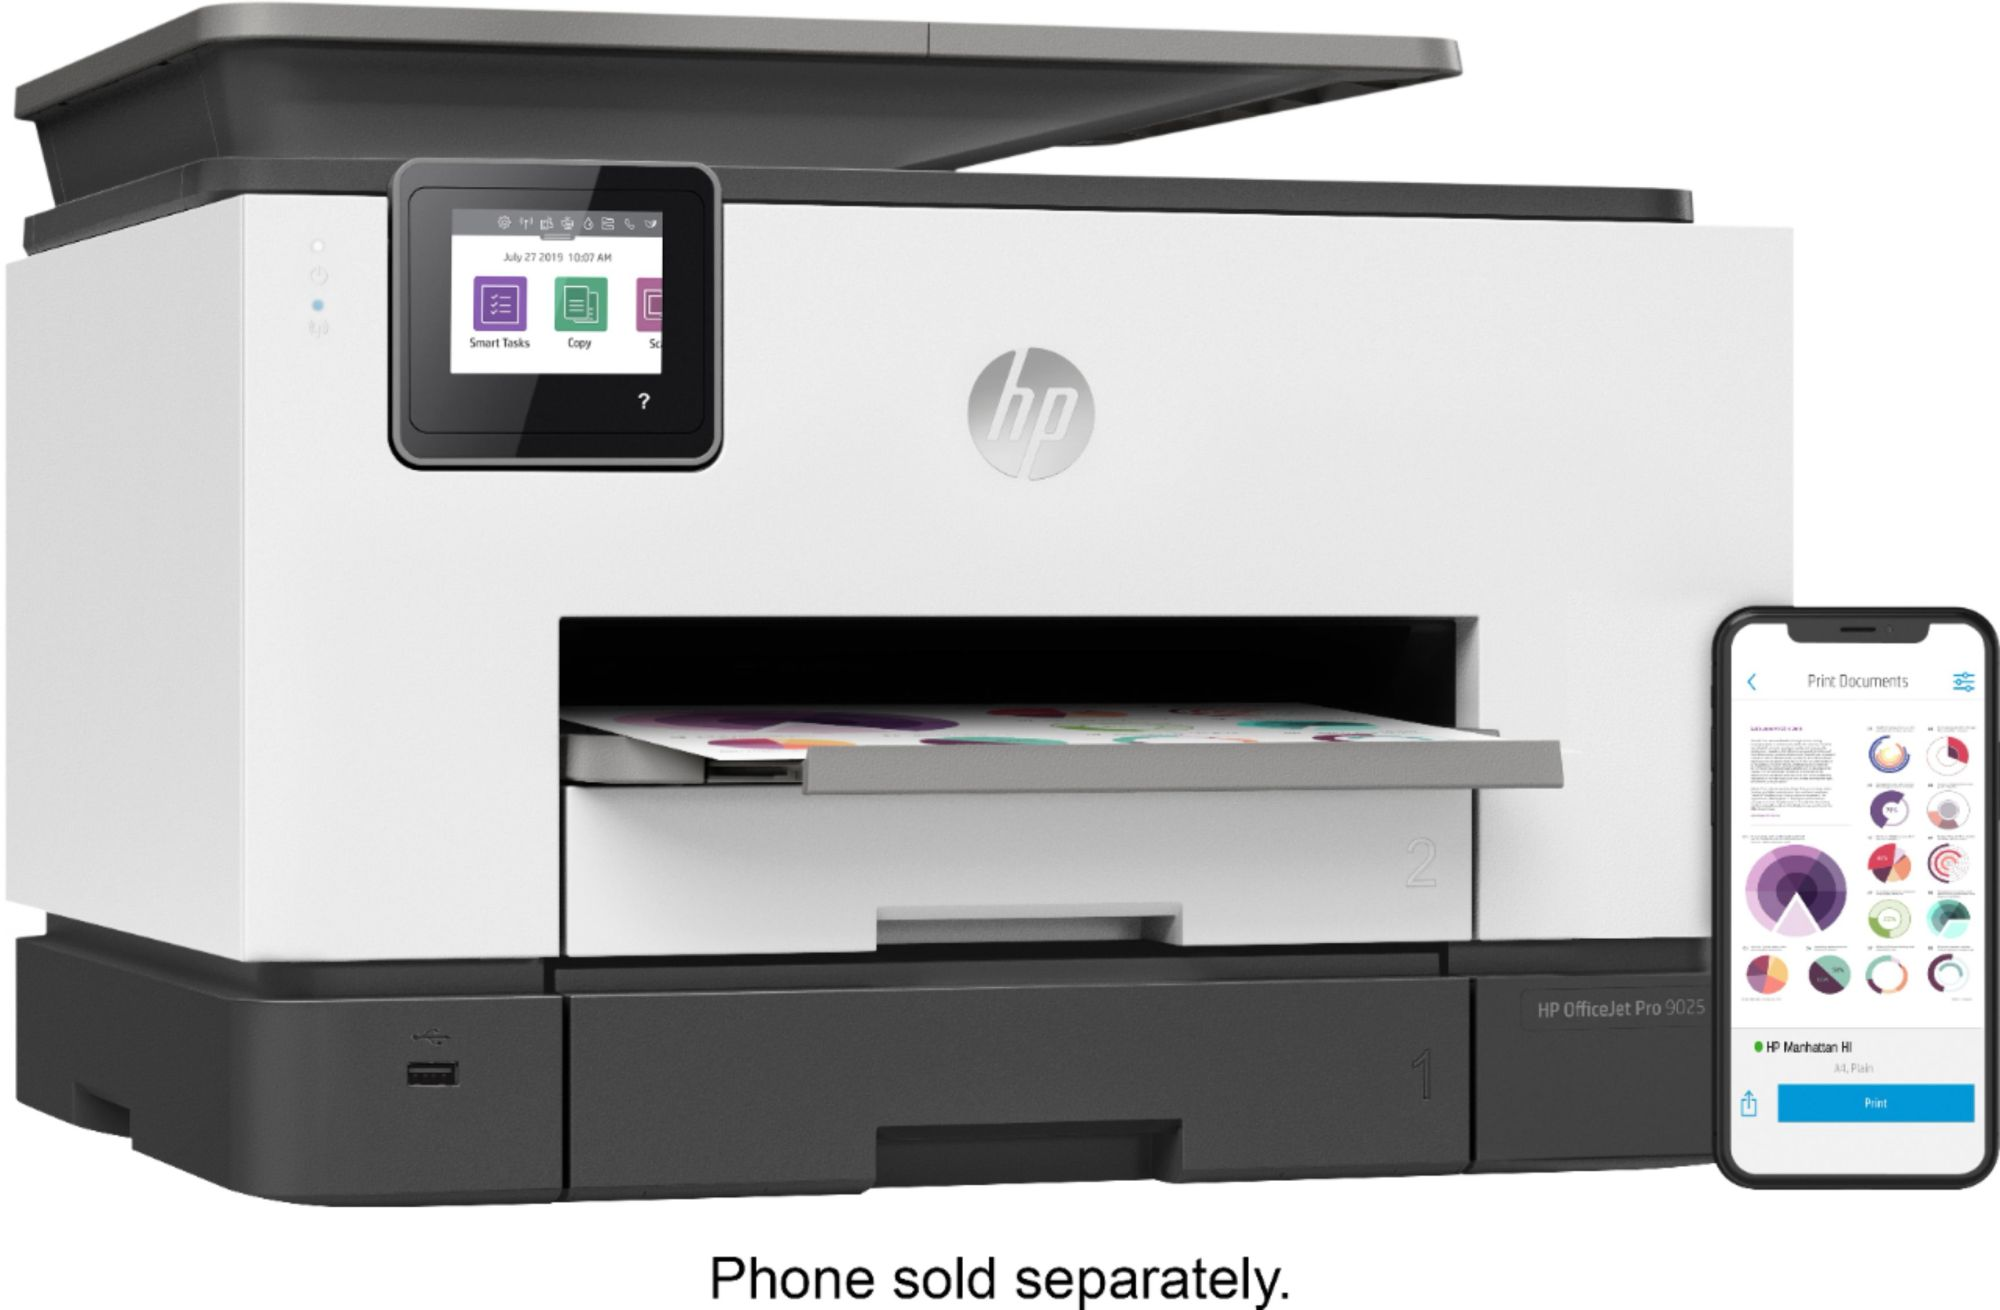 hight resolution of hp officejet pro 9025 all in one instant ink ready printer 1mr66a b1h best buy